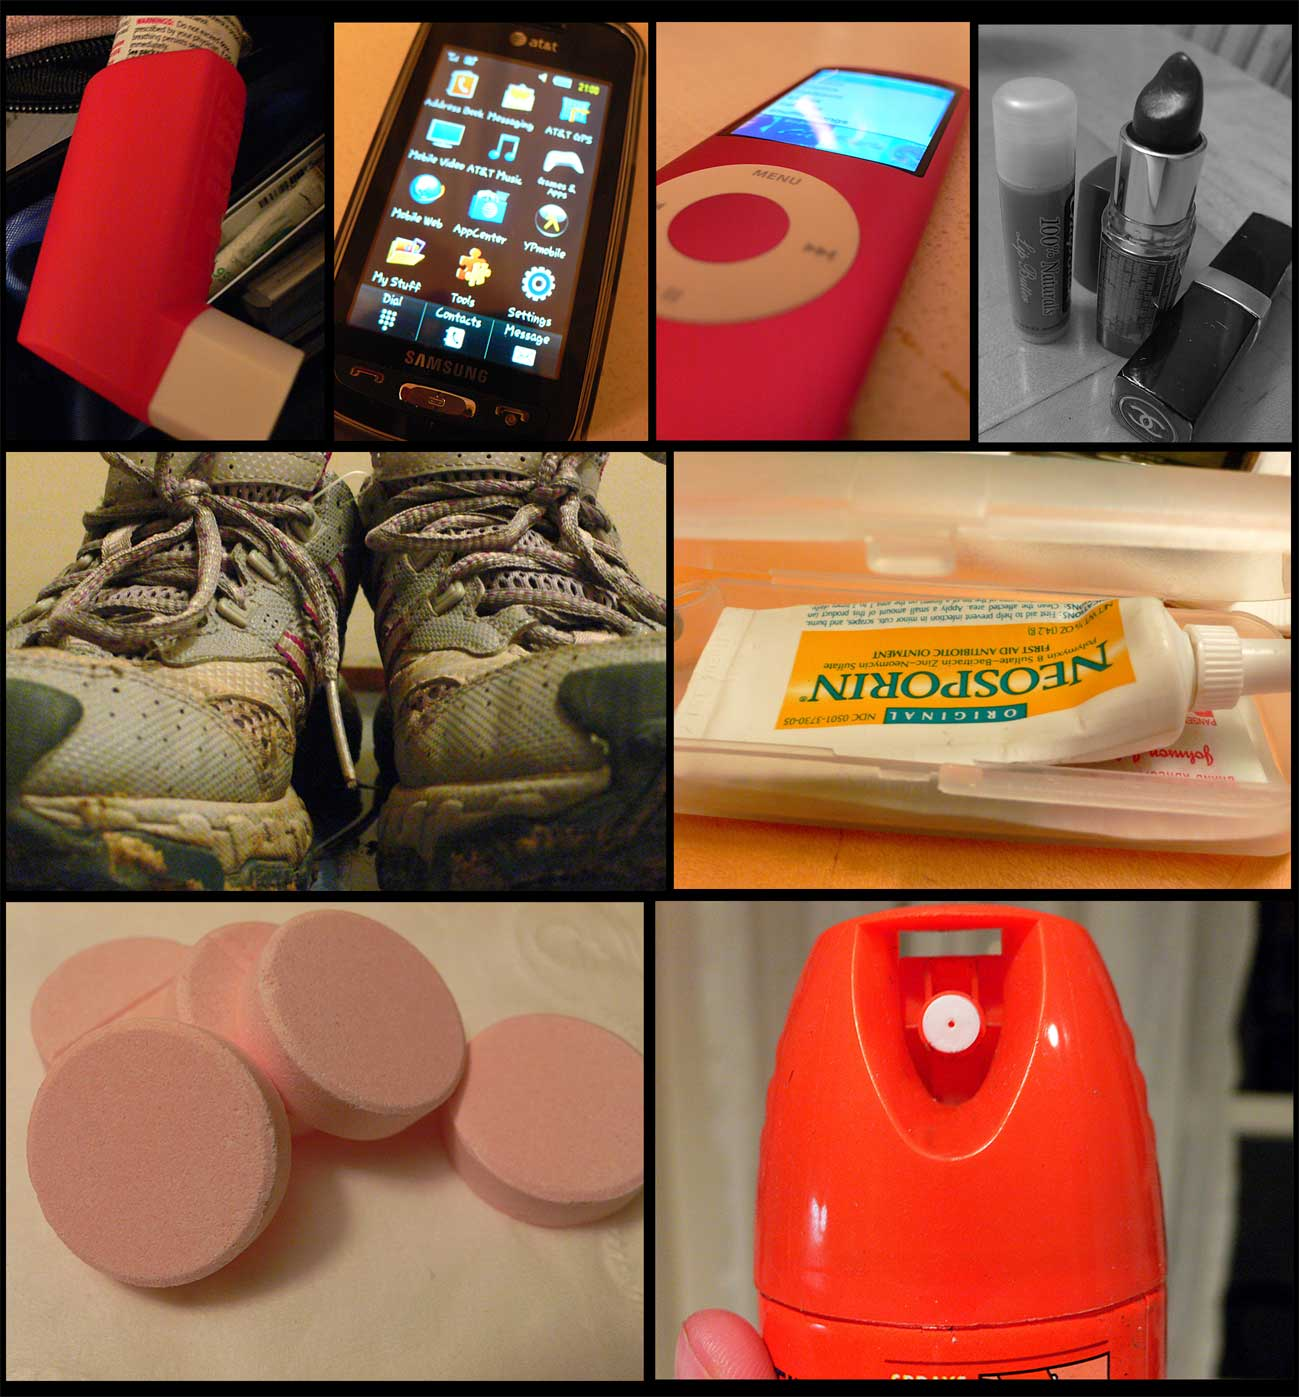 the things i carry with me, por si las moscas